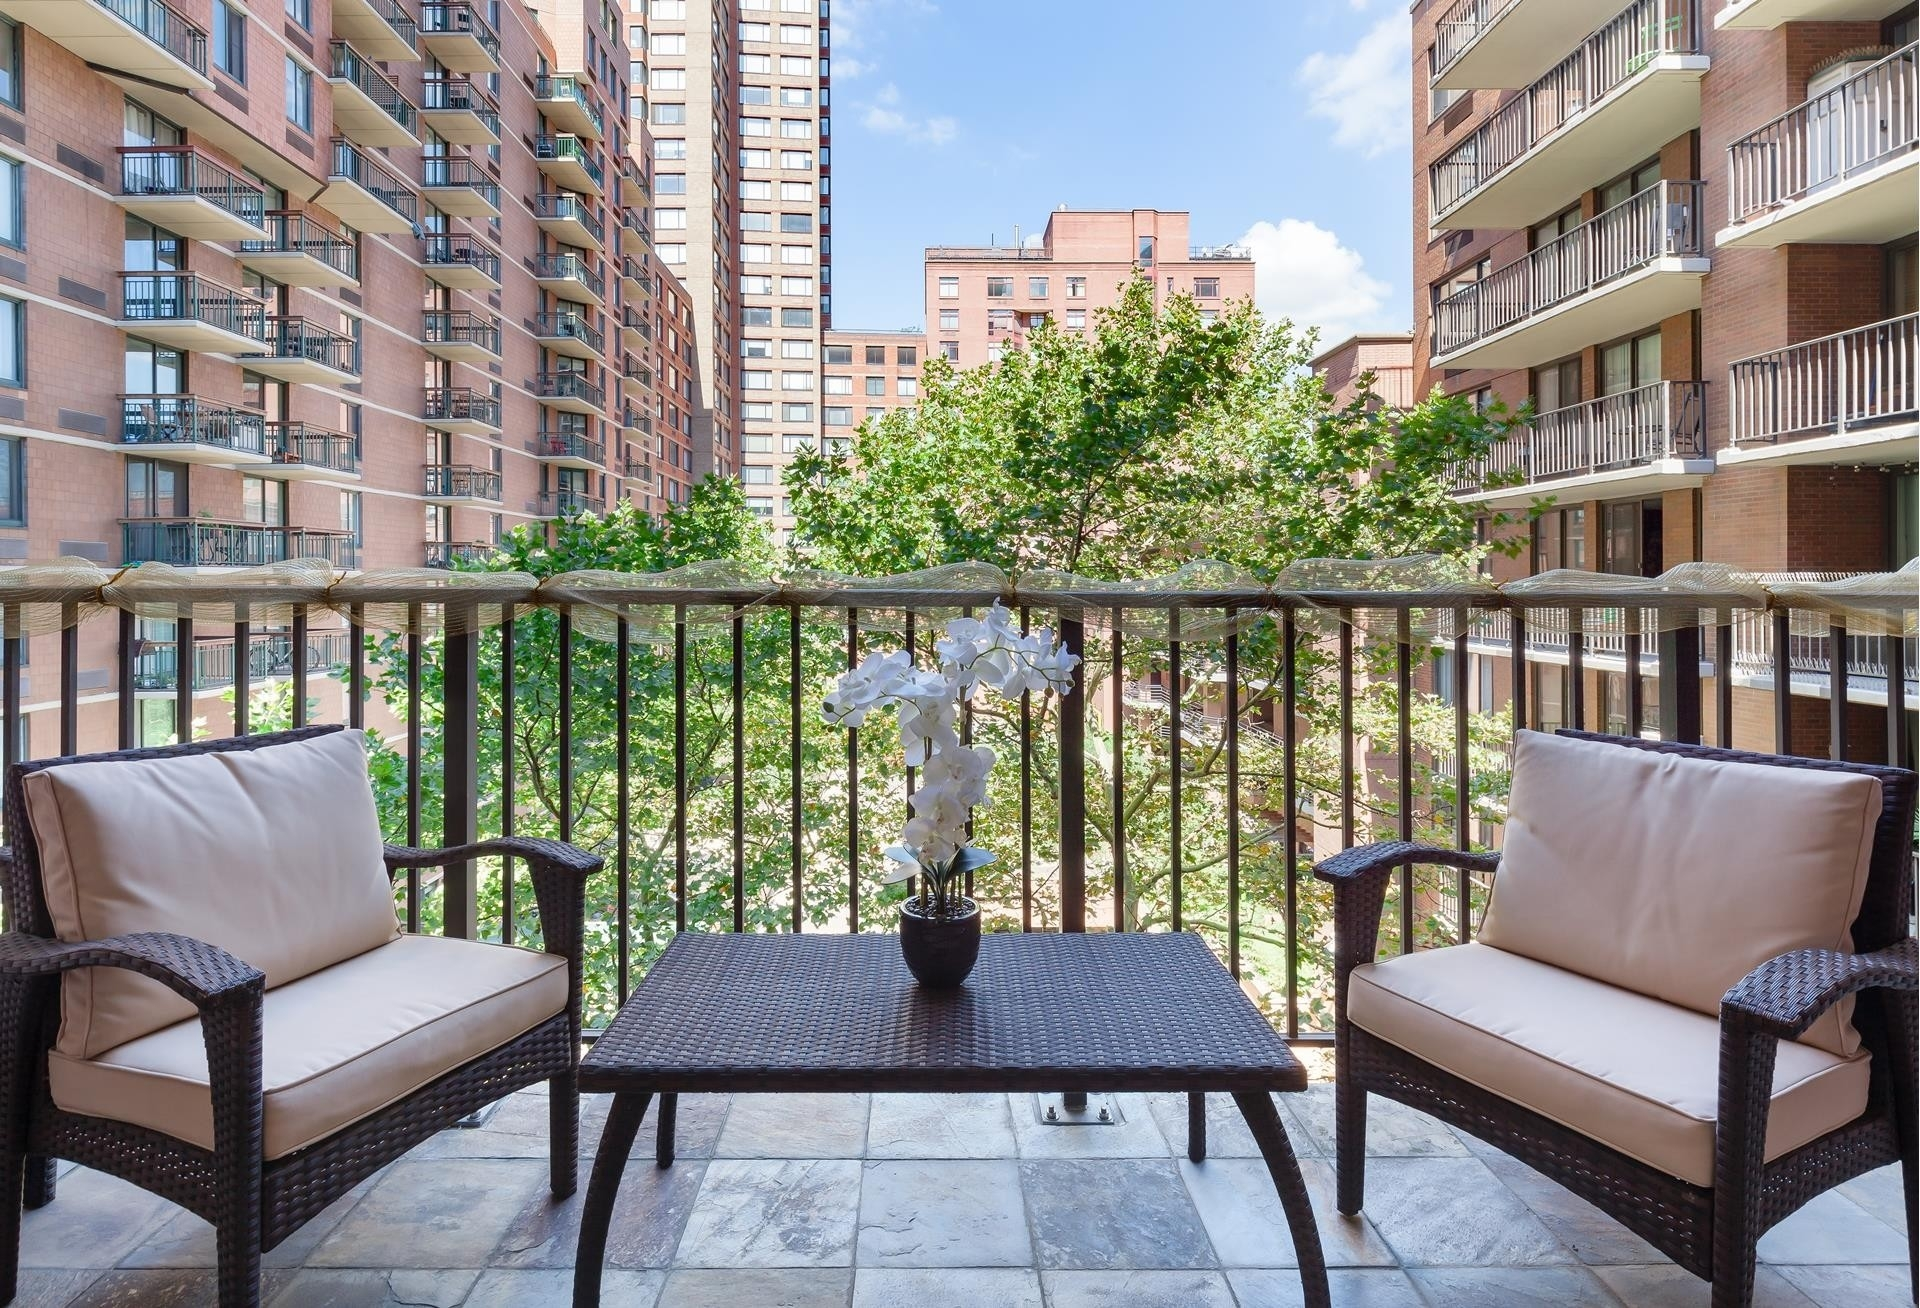 Condominium at HUDSON VIEW WEST, 300 Albany St, 5N New York